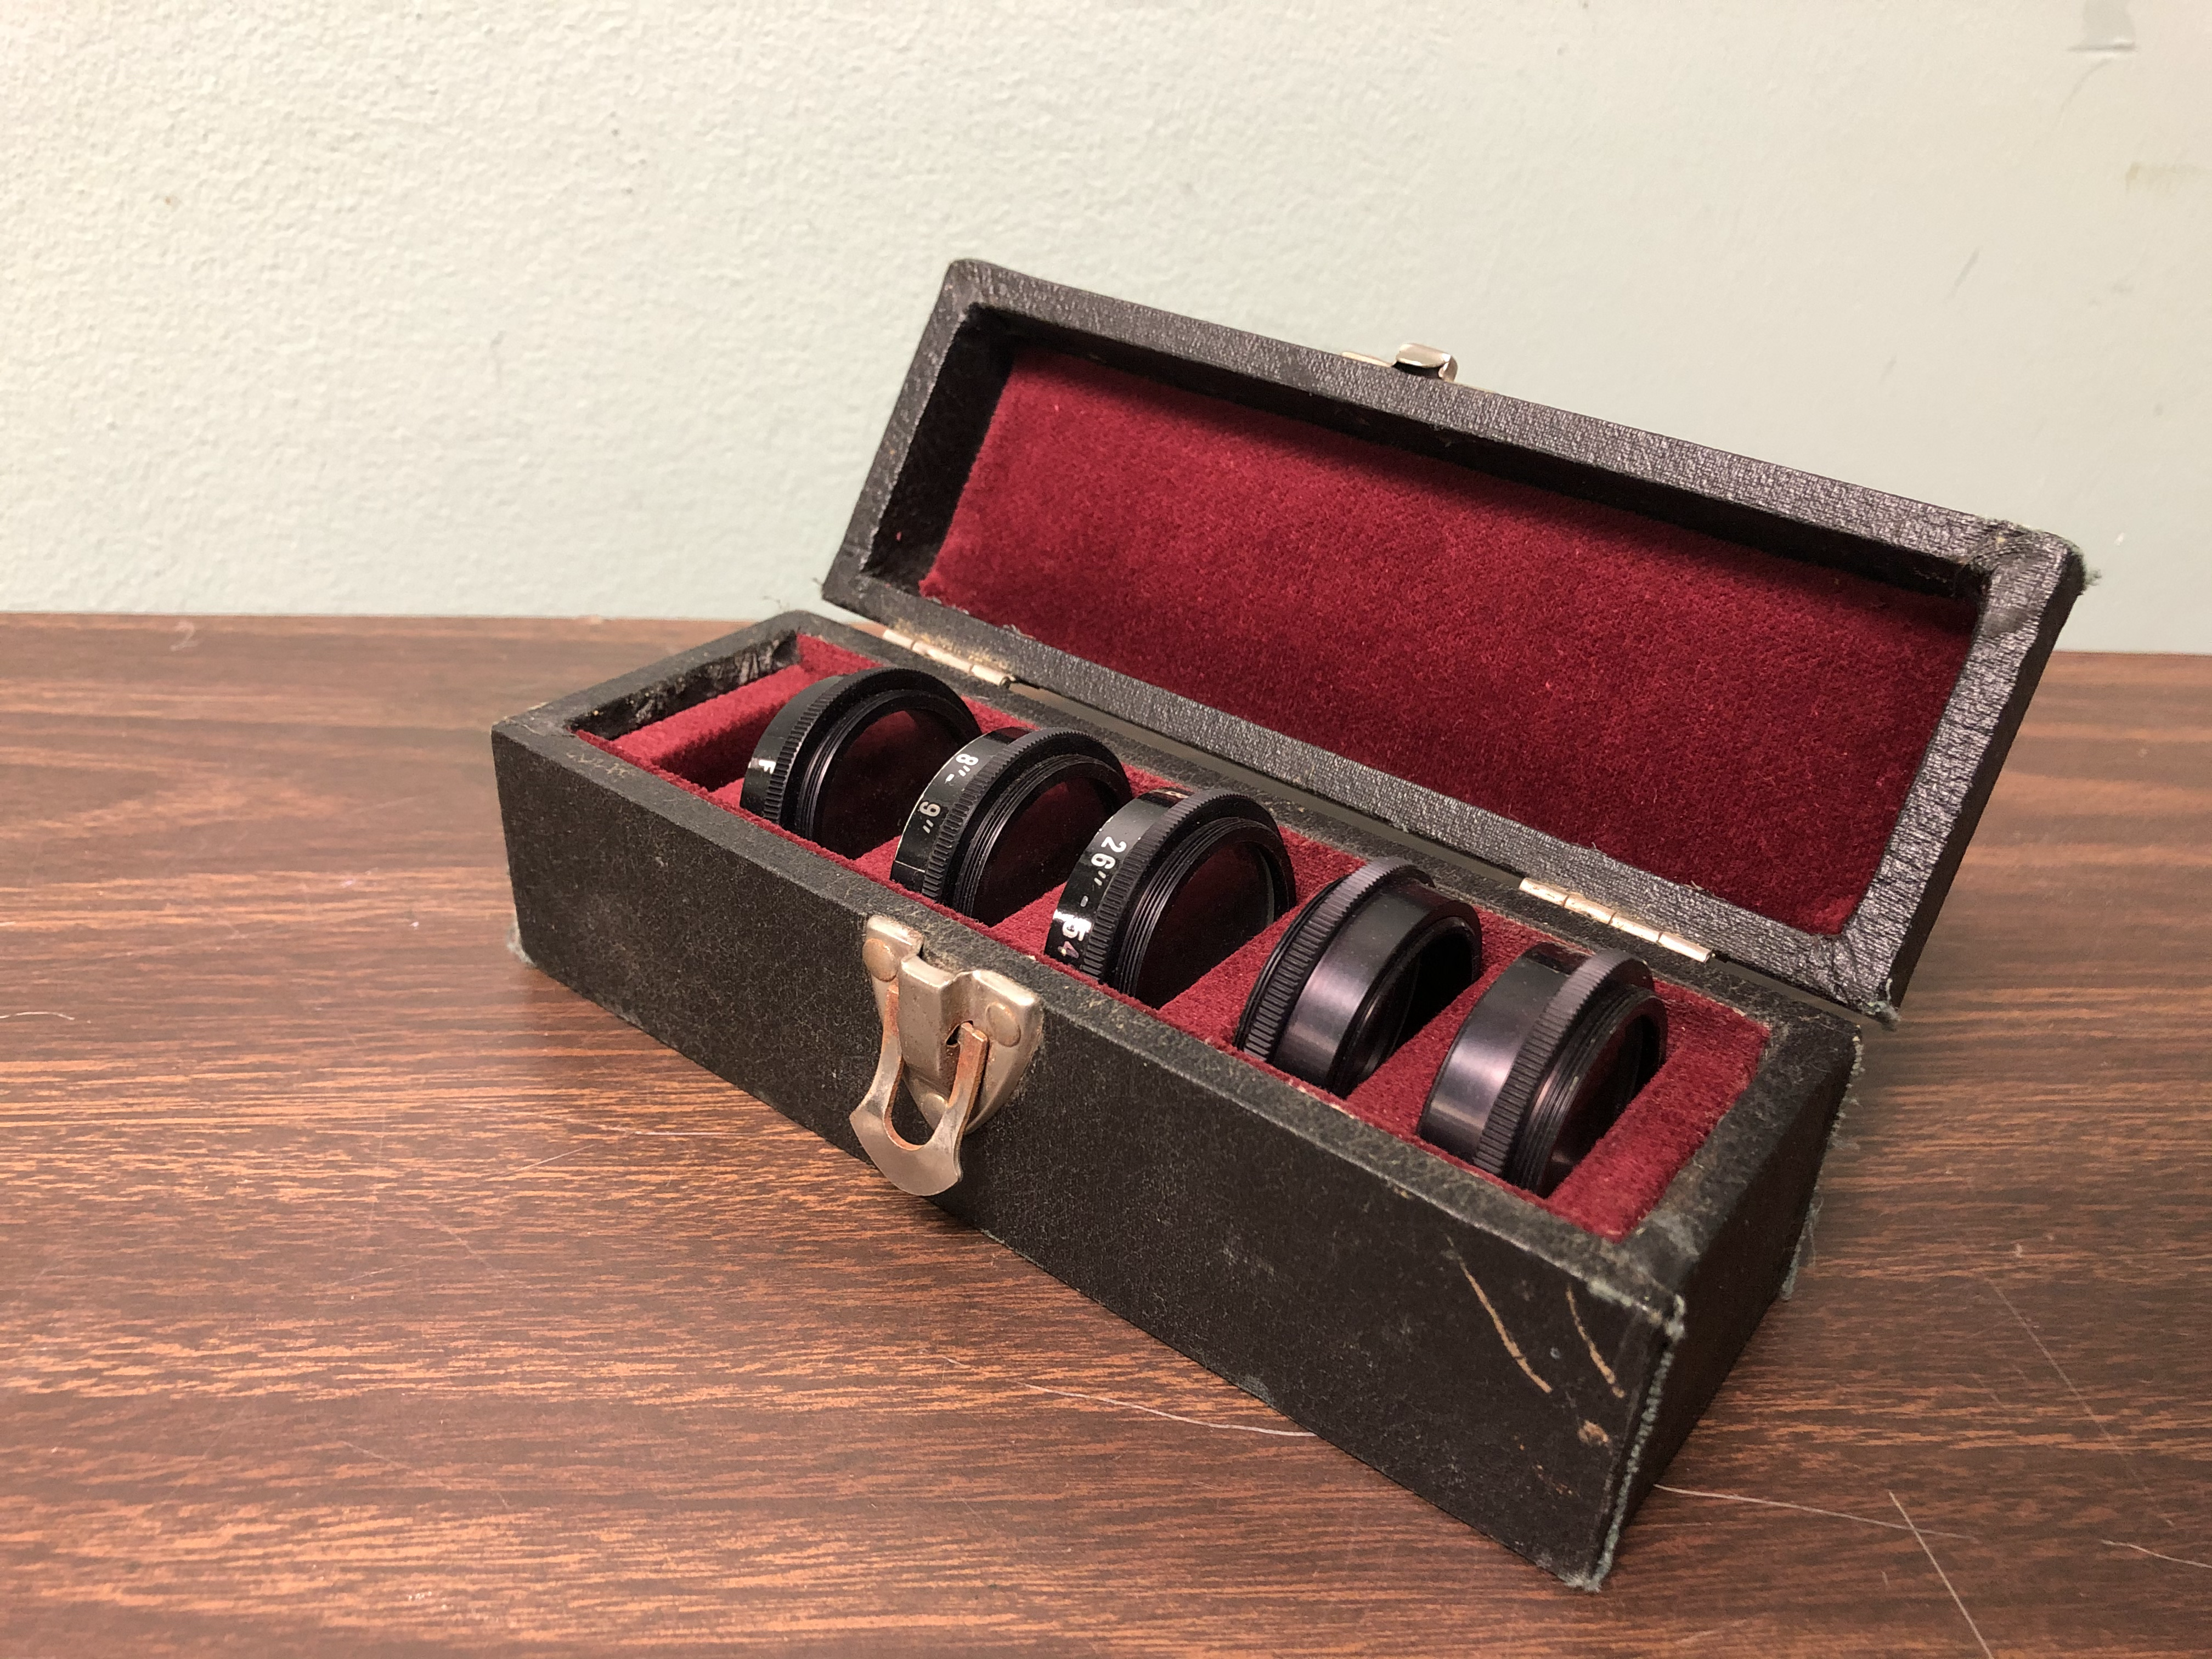 Camera lenses in clasp box